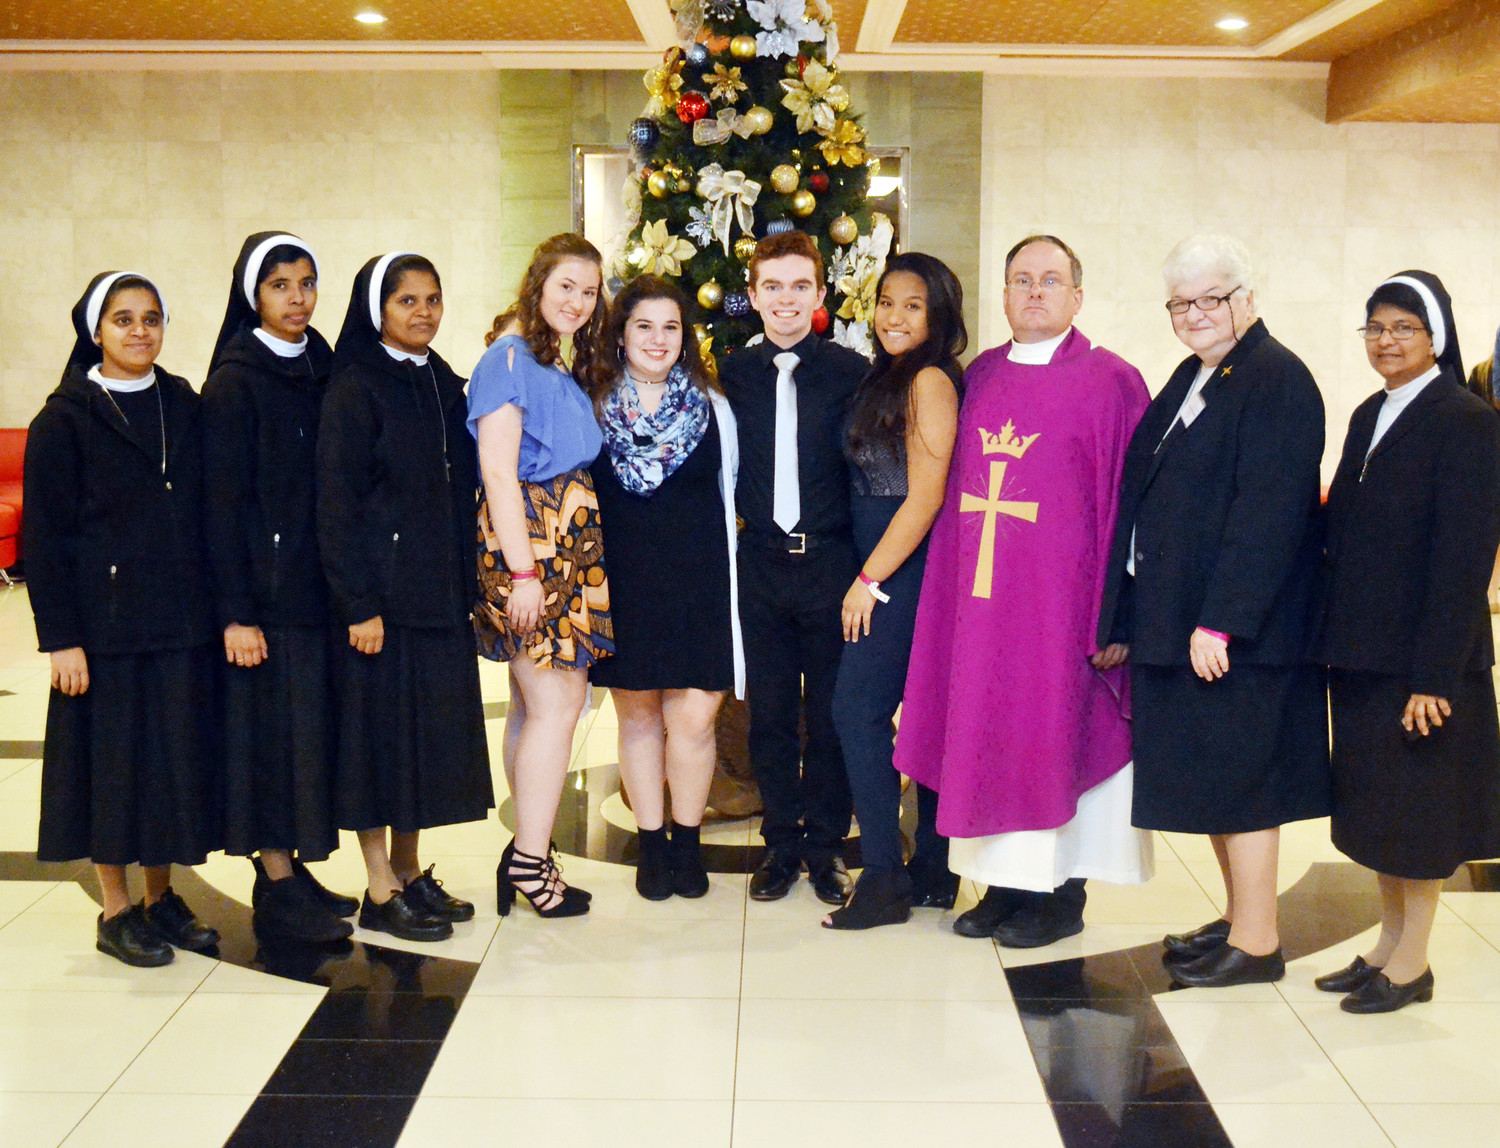 Sister Laucena Bennis, C.S.A.C.; Sister Smija Peter, C.S.A.C.; Sister Roseline Jayaraj, C.S.A.C.; Father Michael Martine; Sister Michele Ruggerio, C.S.A.C.; and Sister Shinty Anthony, C.S.A.C. join the new PTAF officers Emma Cranston, Alexa Verderame, John McKiernan and Victoria Bruno.